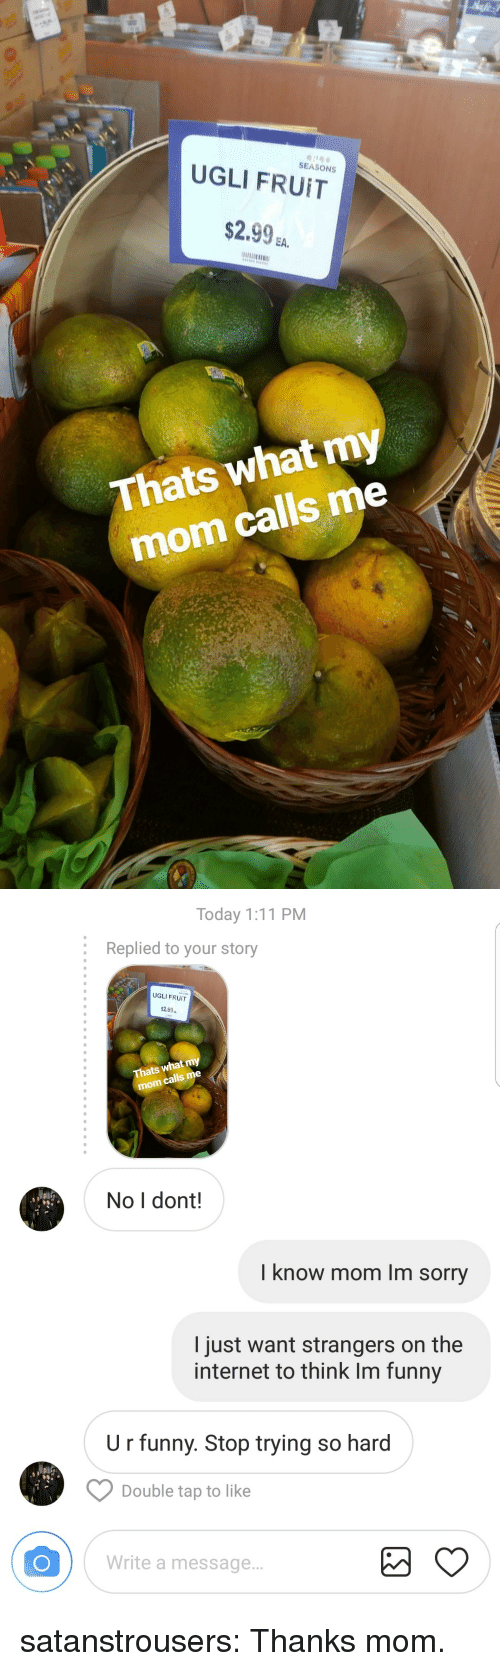 Funny, Internet, and Sorry: SEASONS  UGLI FRUIT  $2.9%.  EA.  Thats what my  mom calls me   Today 1:11 PM  :  Replied to your story  UGLI FRUIT  2.99a  Thats what my  calls me  mom  No I dont!  I know mom Im sorry  I just want strangers on the  internet to think Im funny  U r funny. Stop trying so hard  Double tap to like  Write a message.. satanstrousers: Thanks mom.